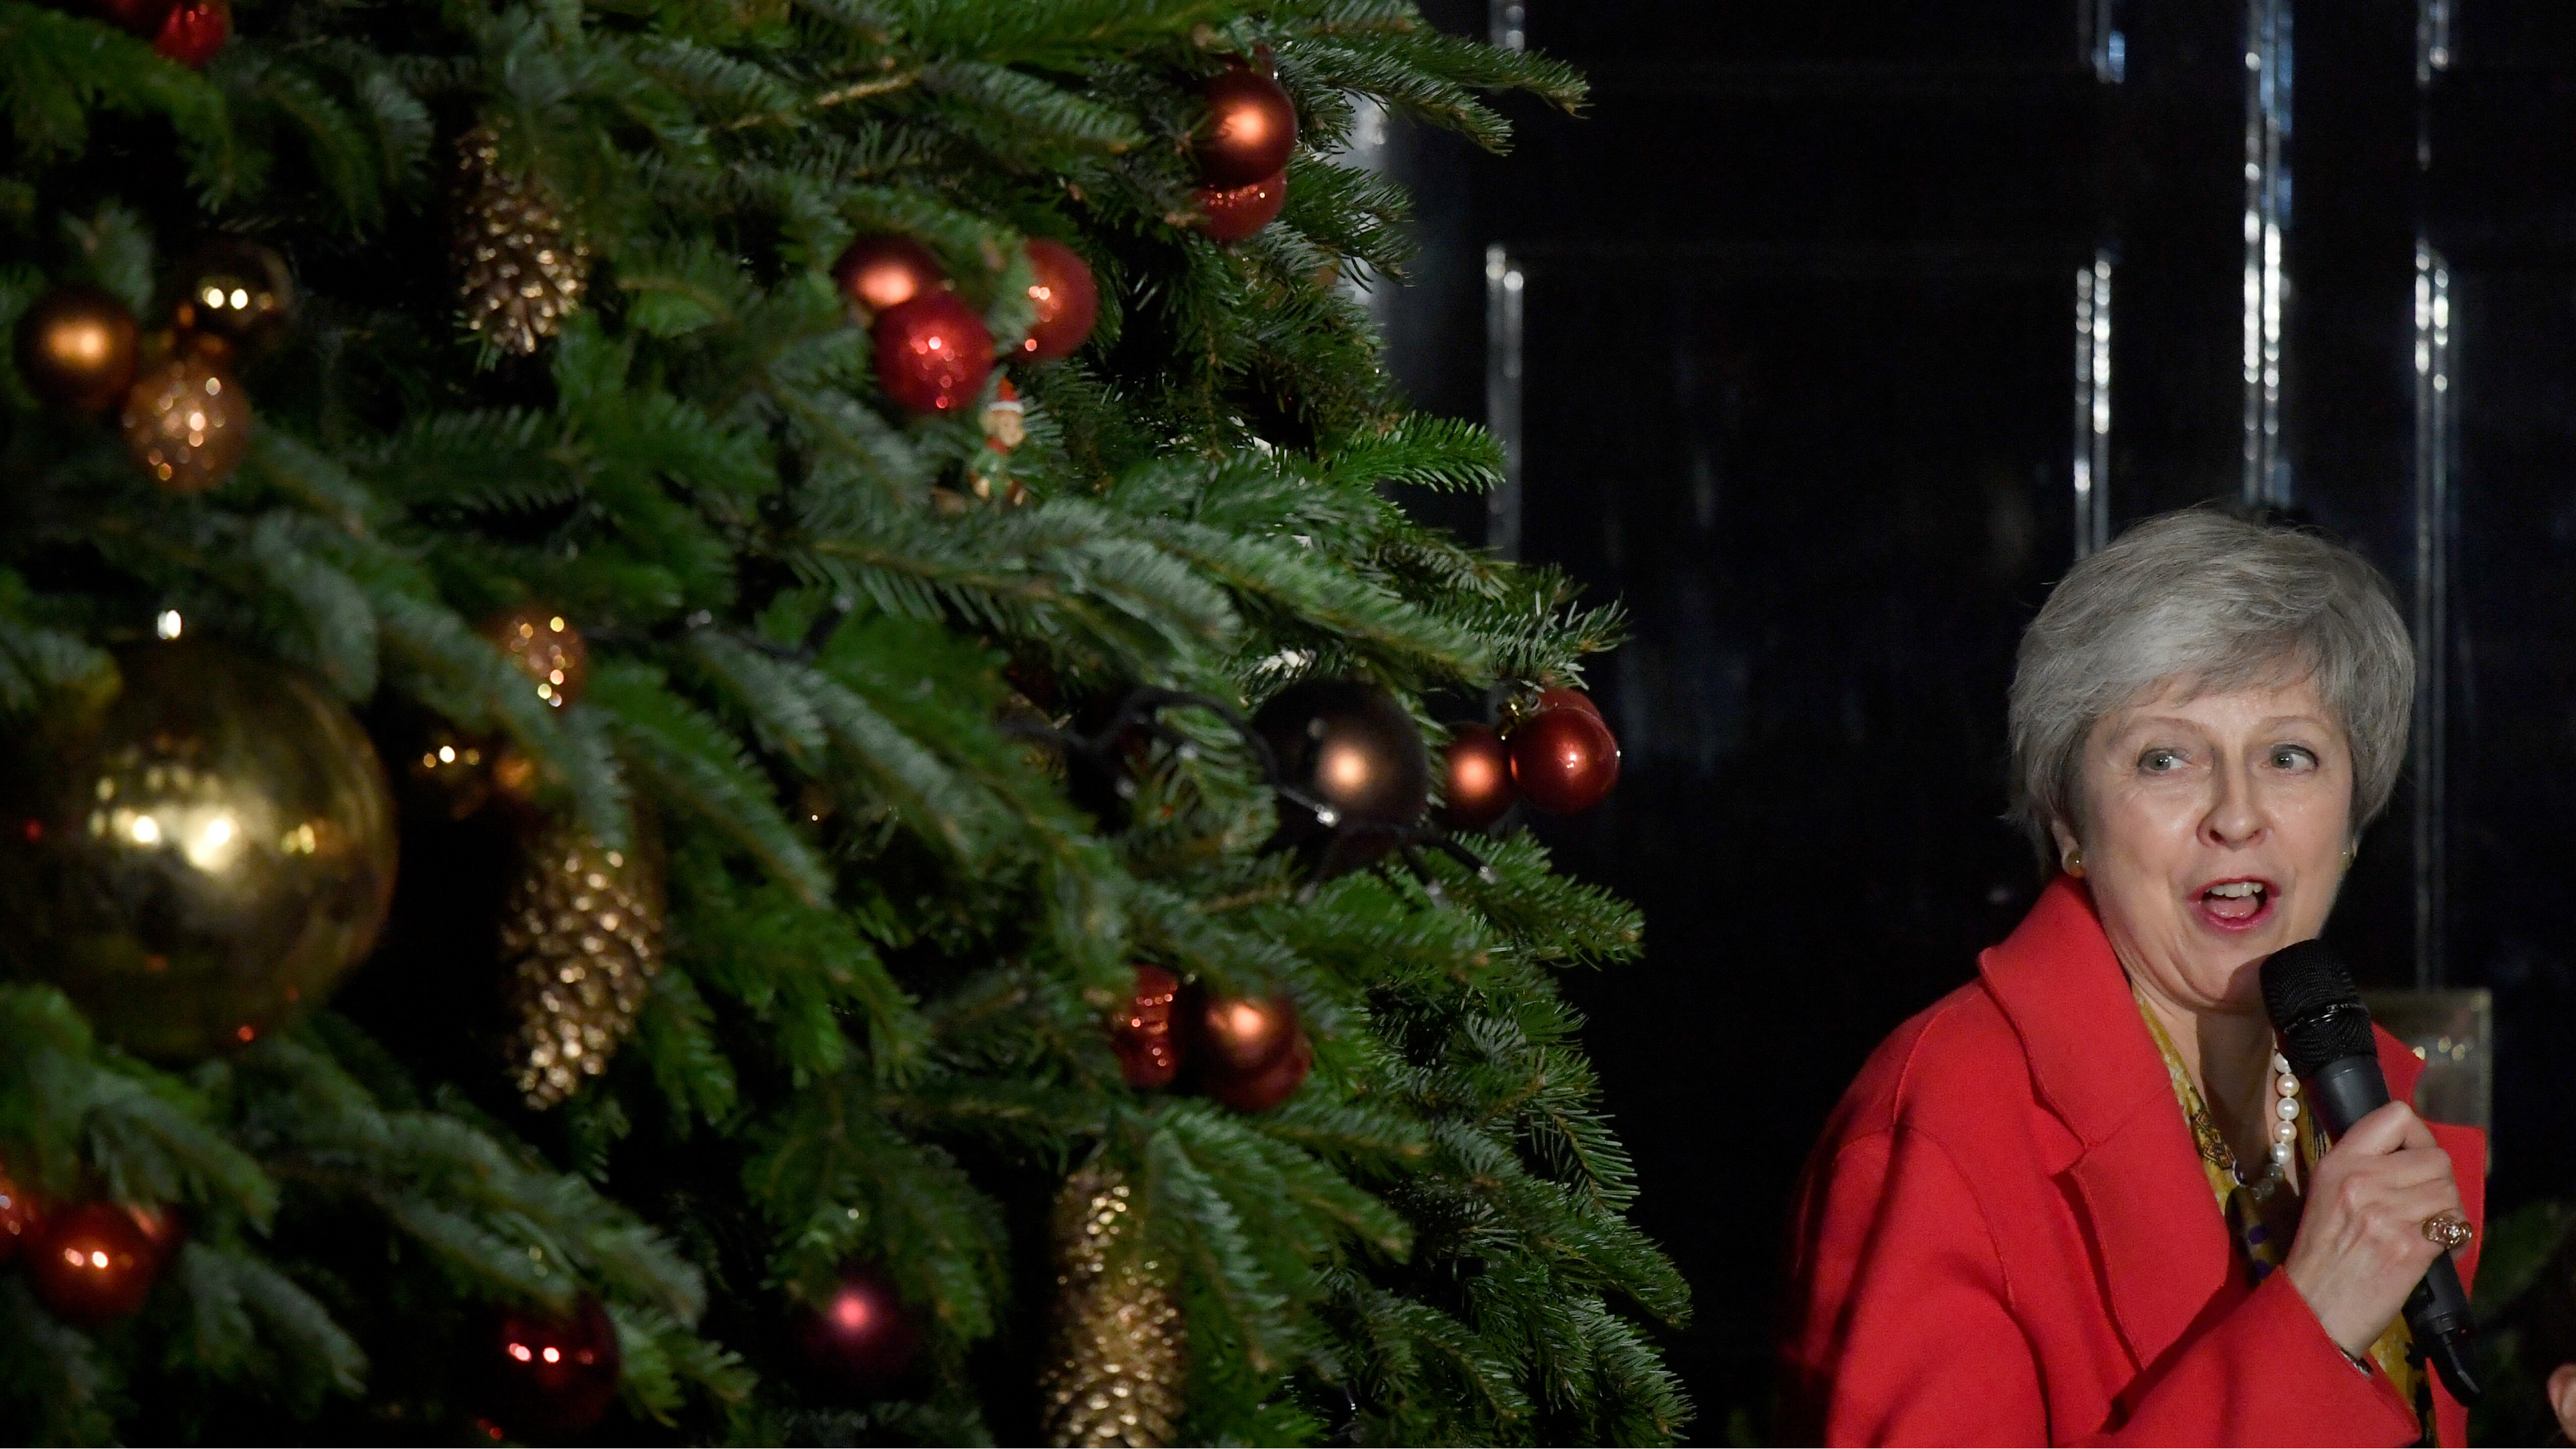 Britain's Prime Minister, Theresa May, uses a microphone during the ceremony of switching on the lights of the Christmas tree in Downing Street,